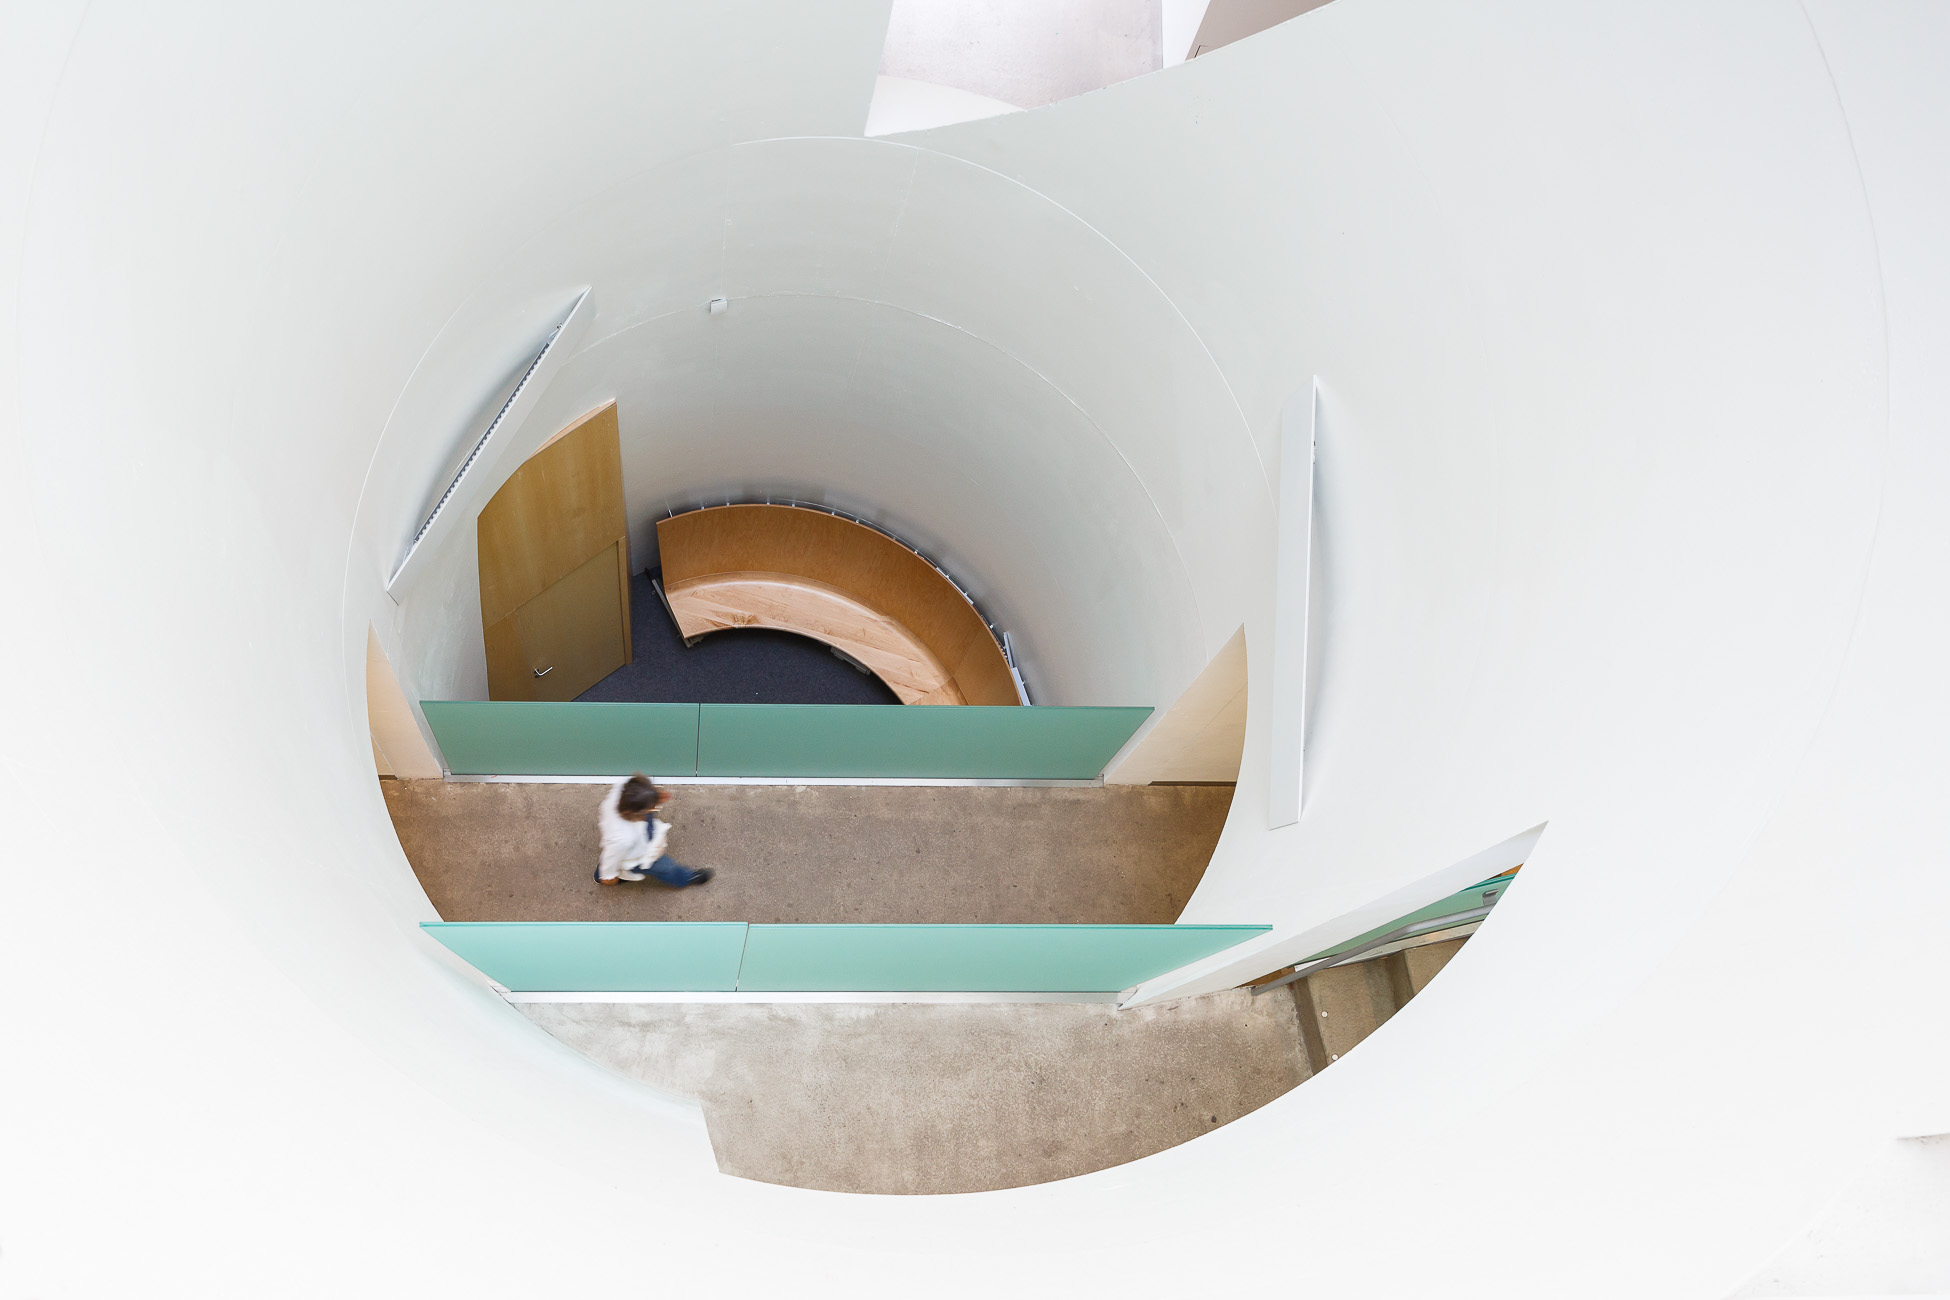 doublespace_architecture_steven_holl_glasgow_reid_school_of_arts-0038